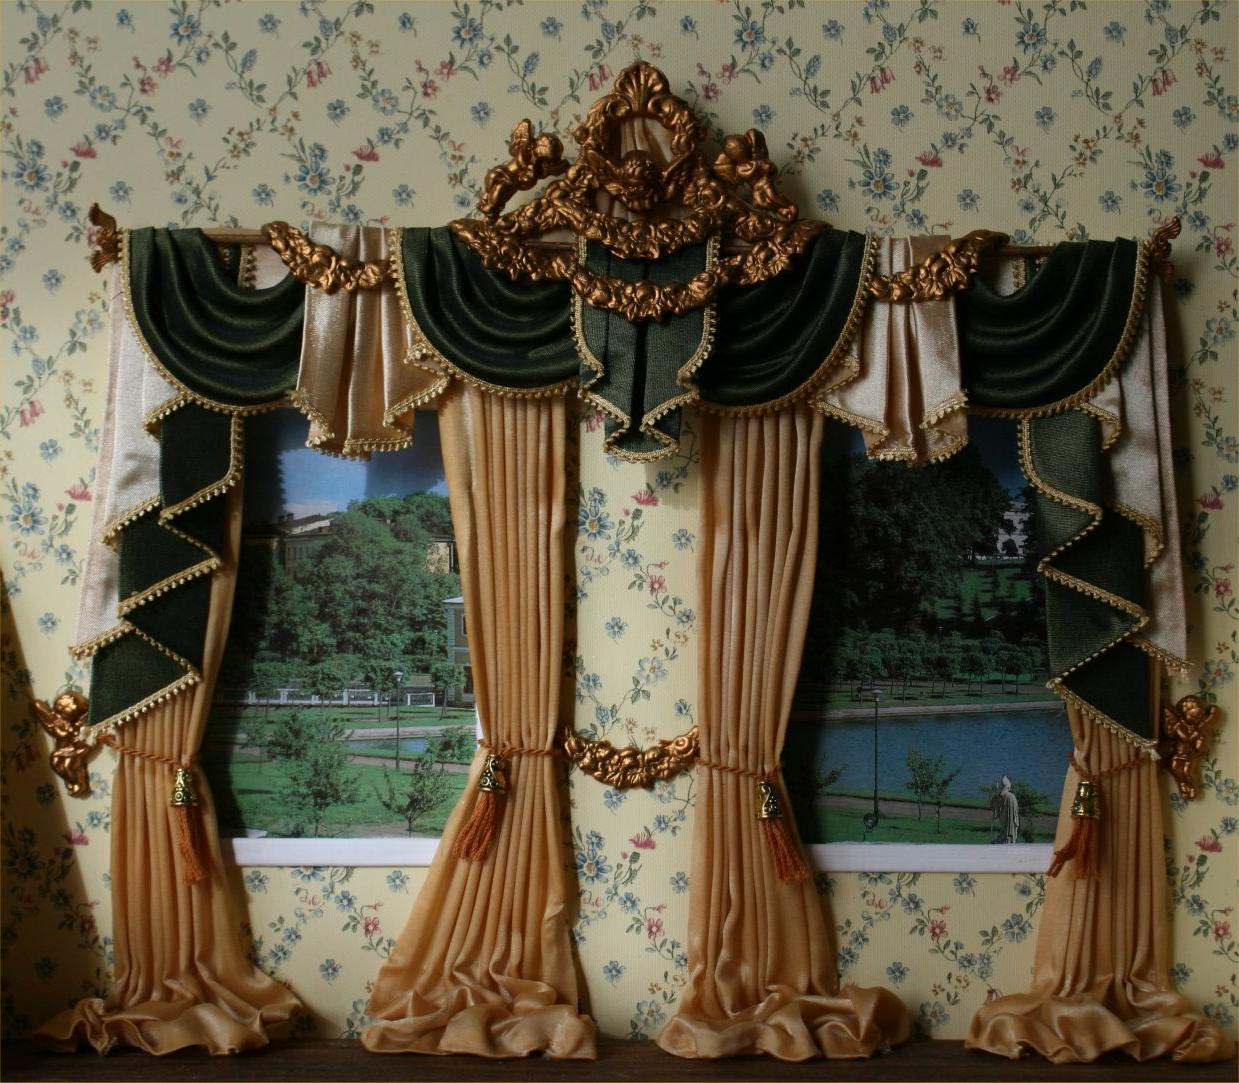 light-brown-and-green-valance-curtains-barocco